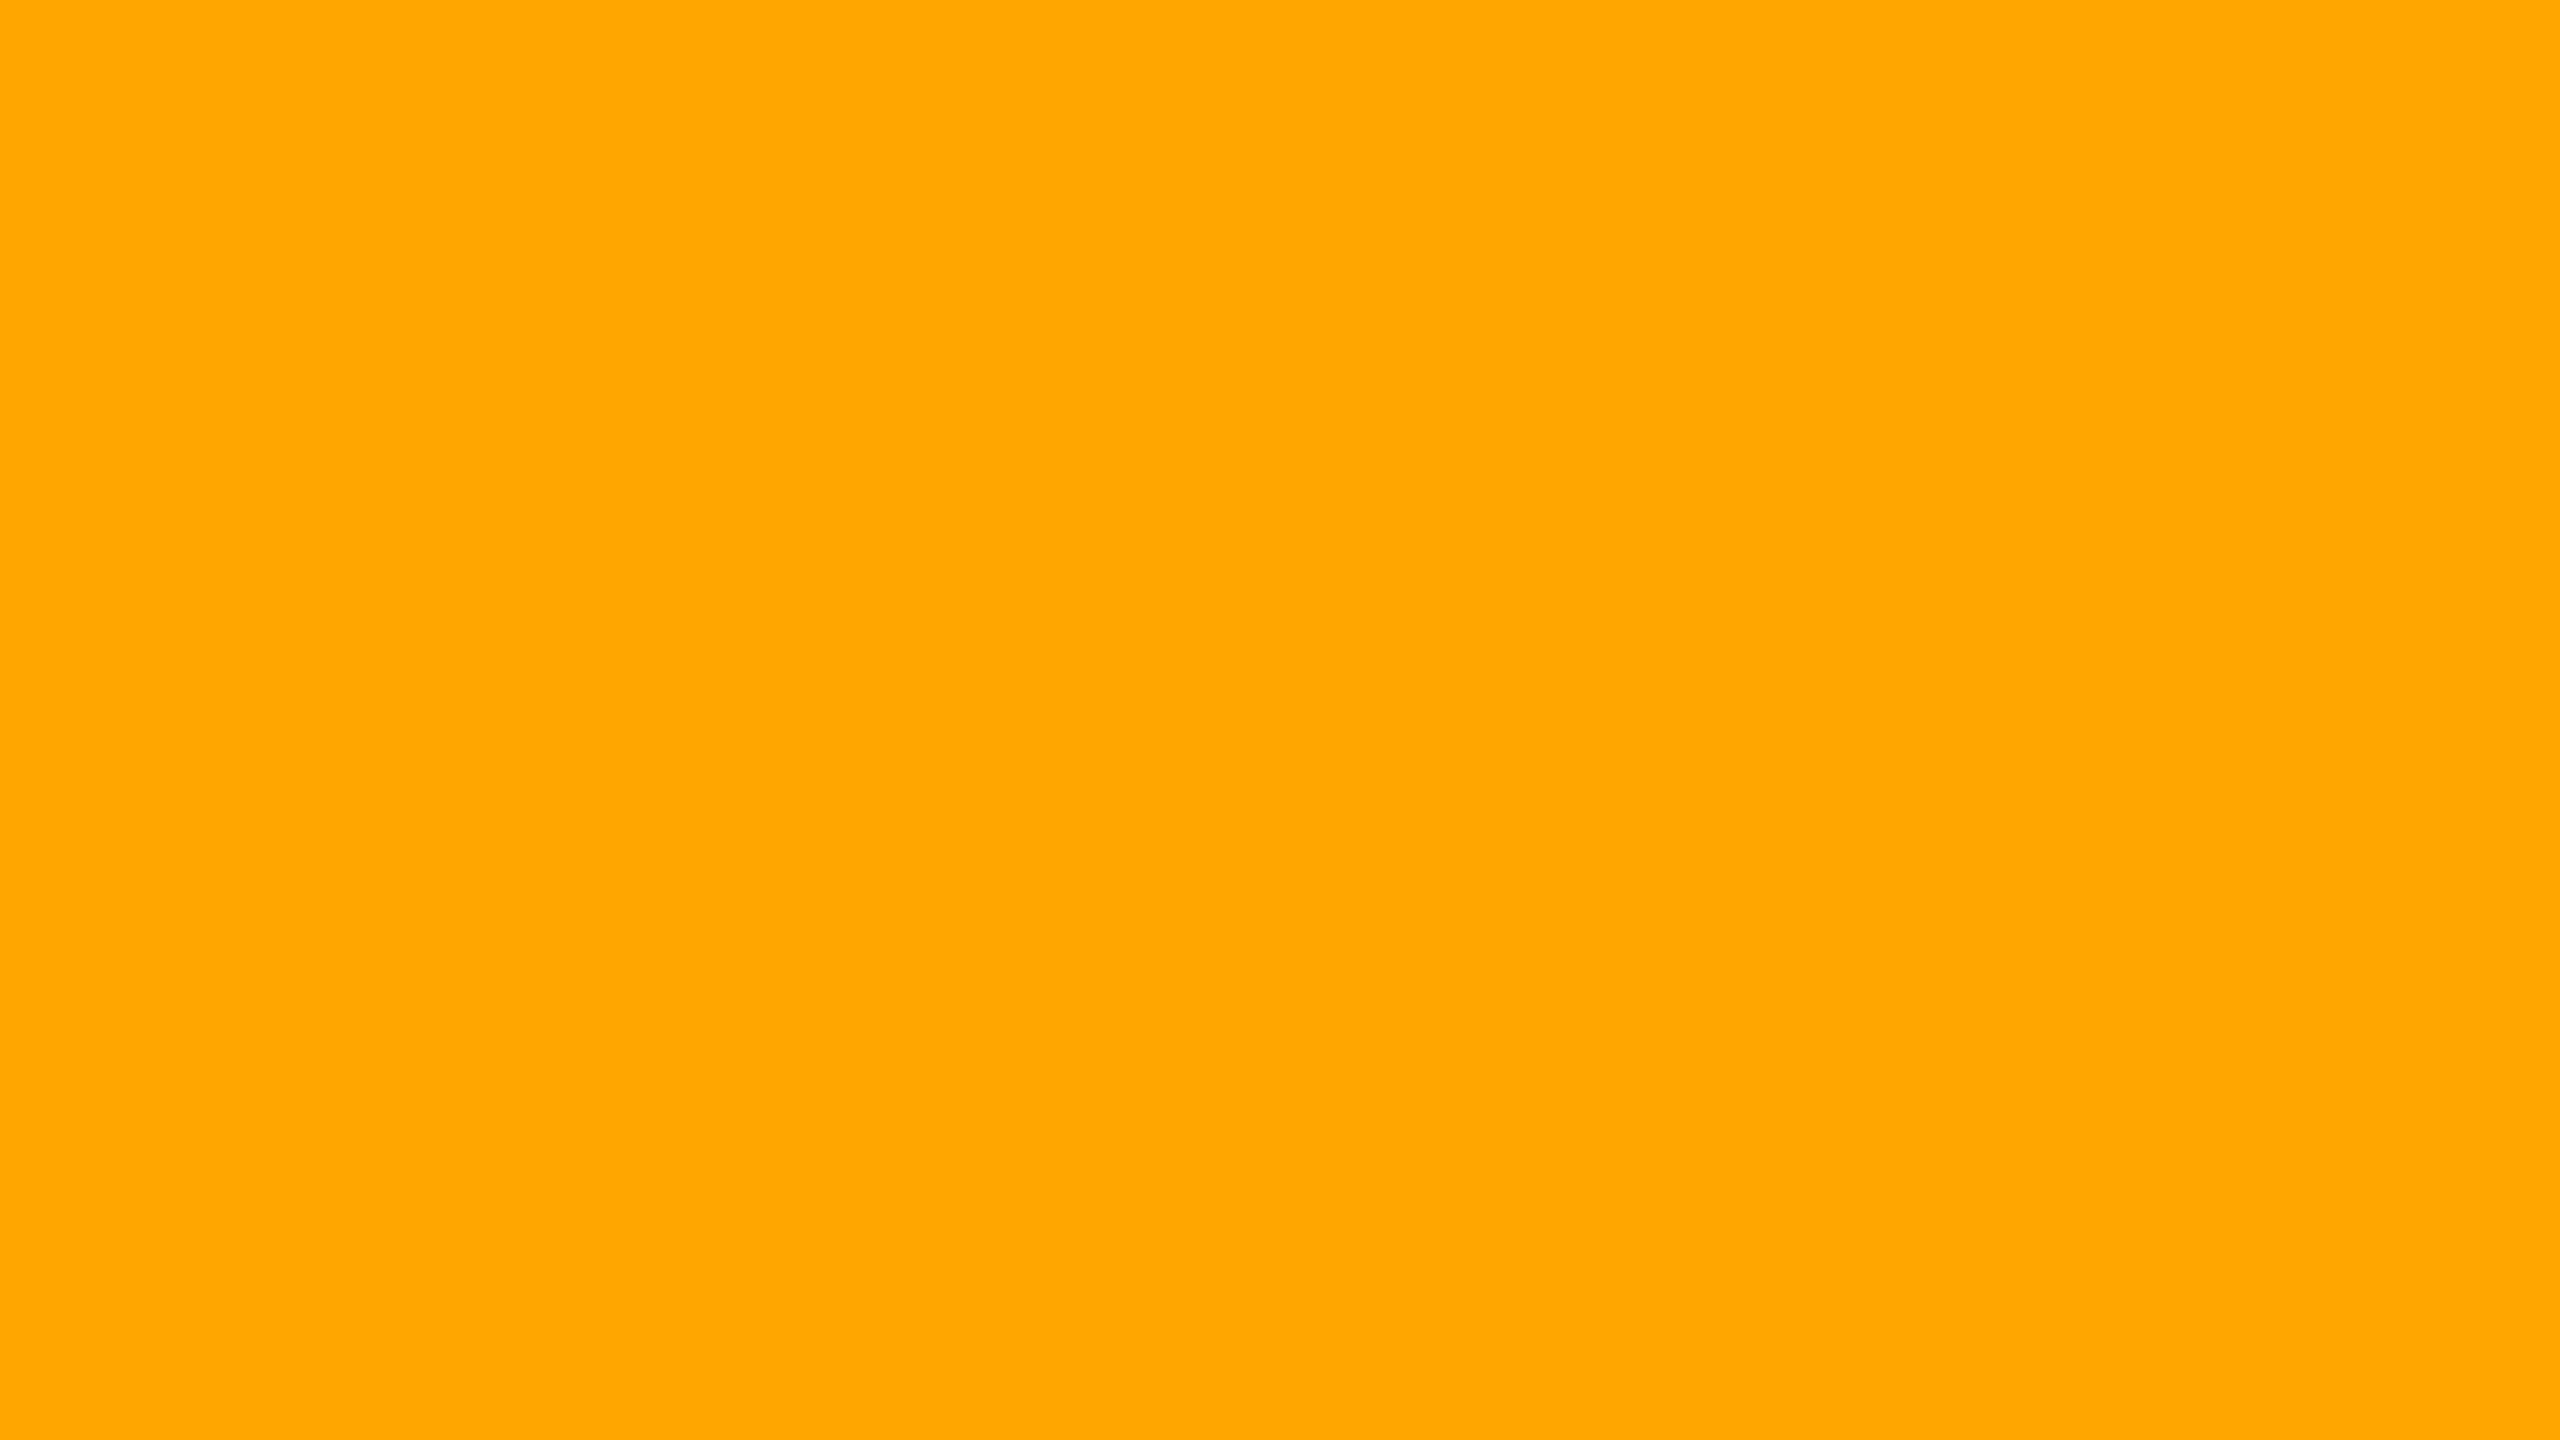 2560x1440 chrome yellow solid color background